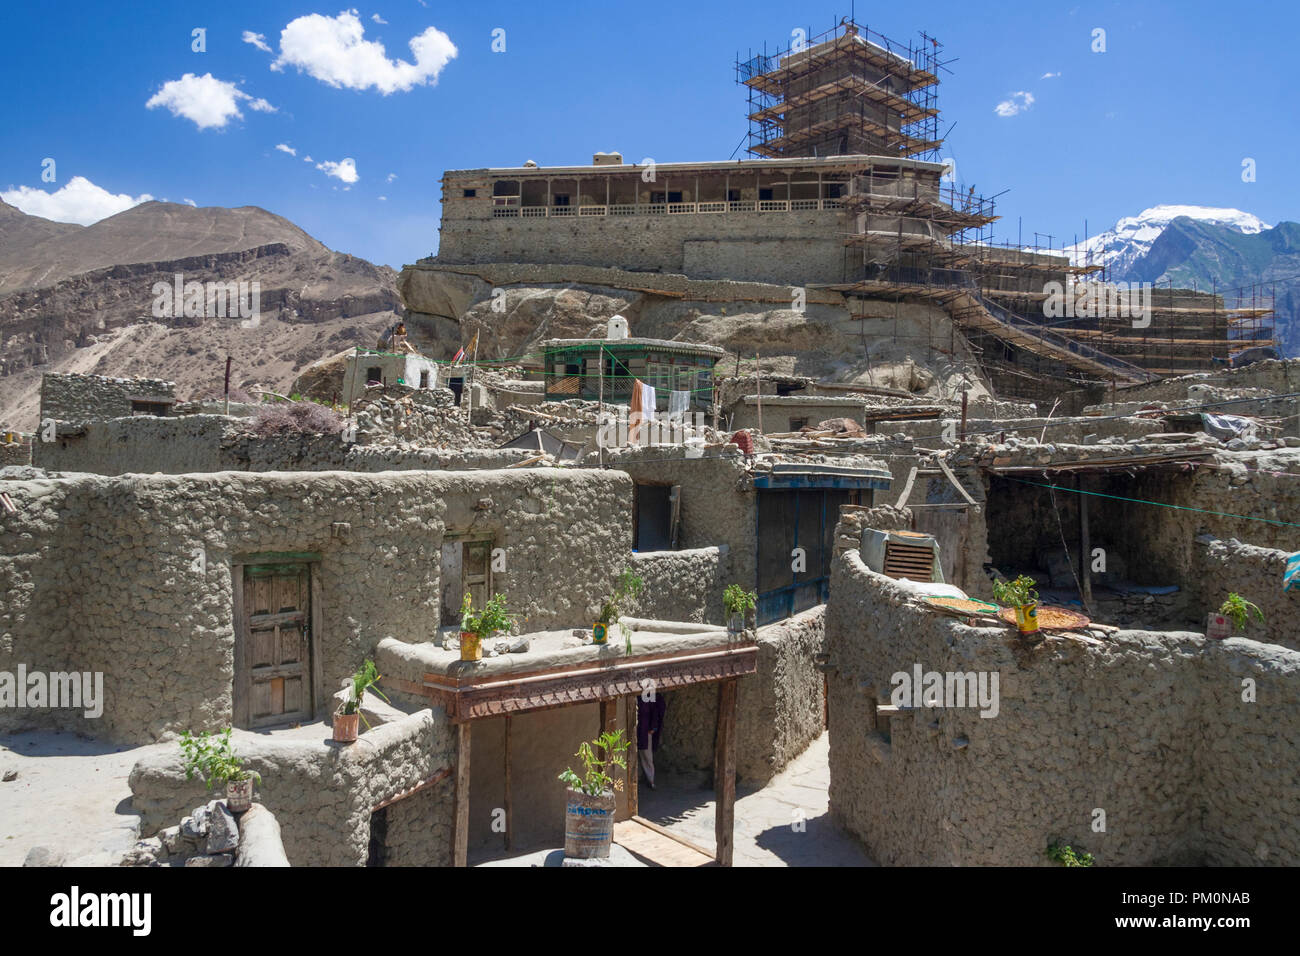 Altit, Hunza Valley, Gilgit-Baltistan, Pakistan : The Altit Fort and village, founded on 11th century on a rock overlooking the Hunza river, was home  - Stock Image